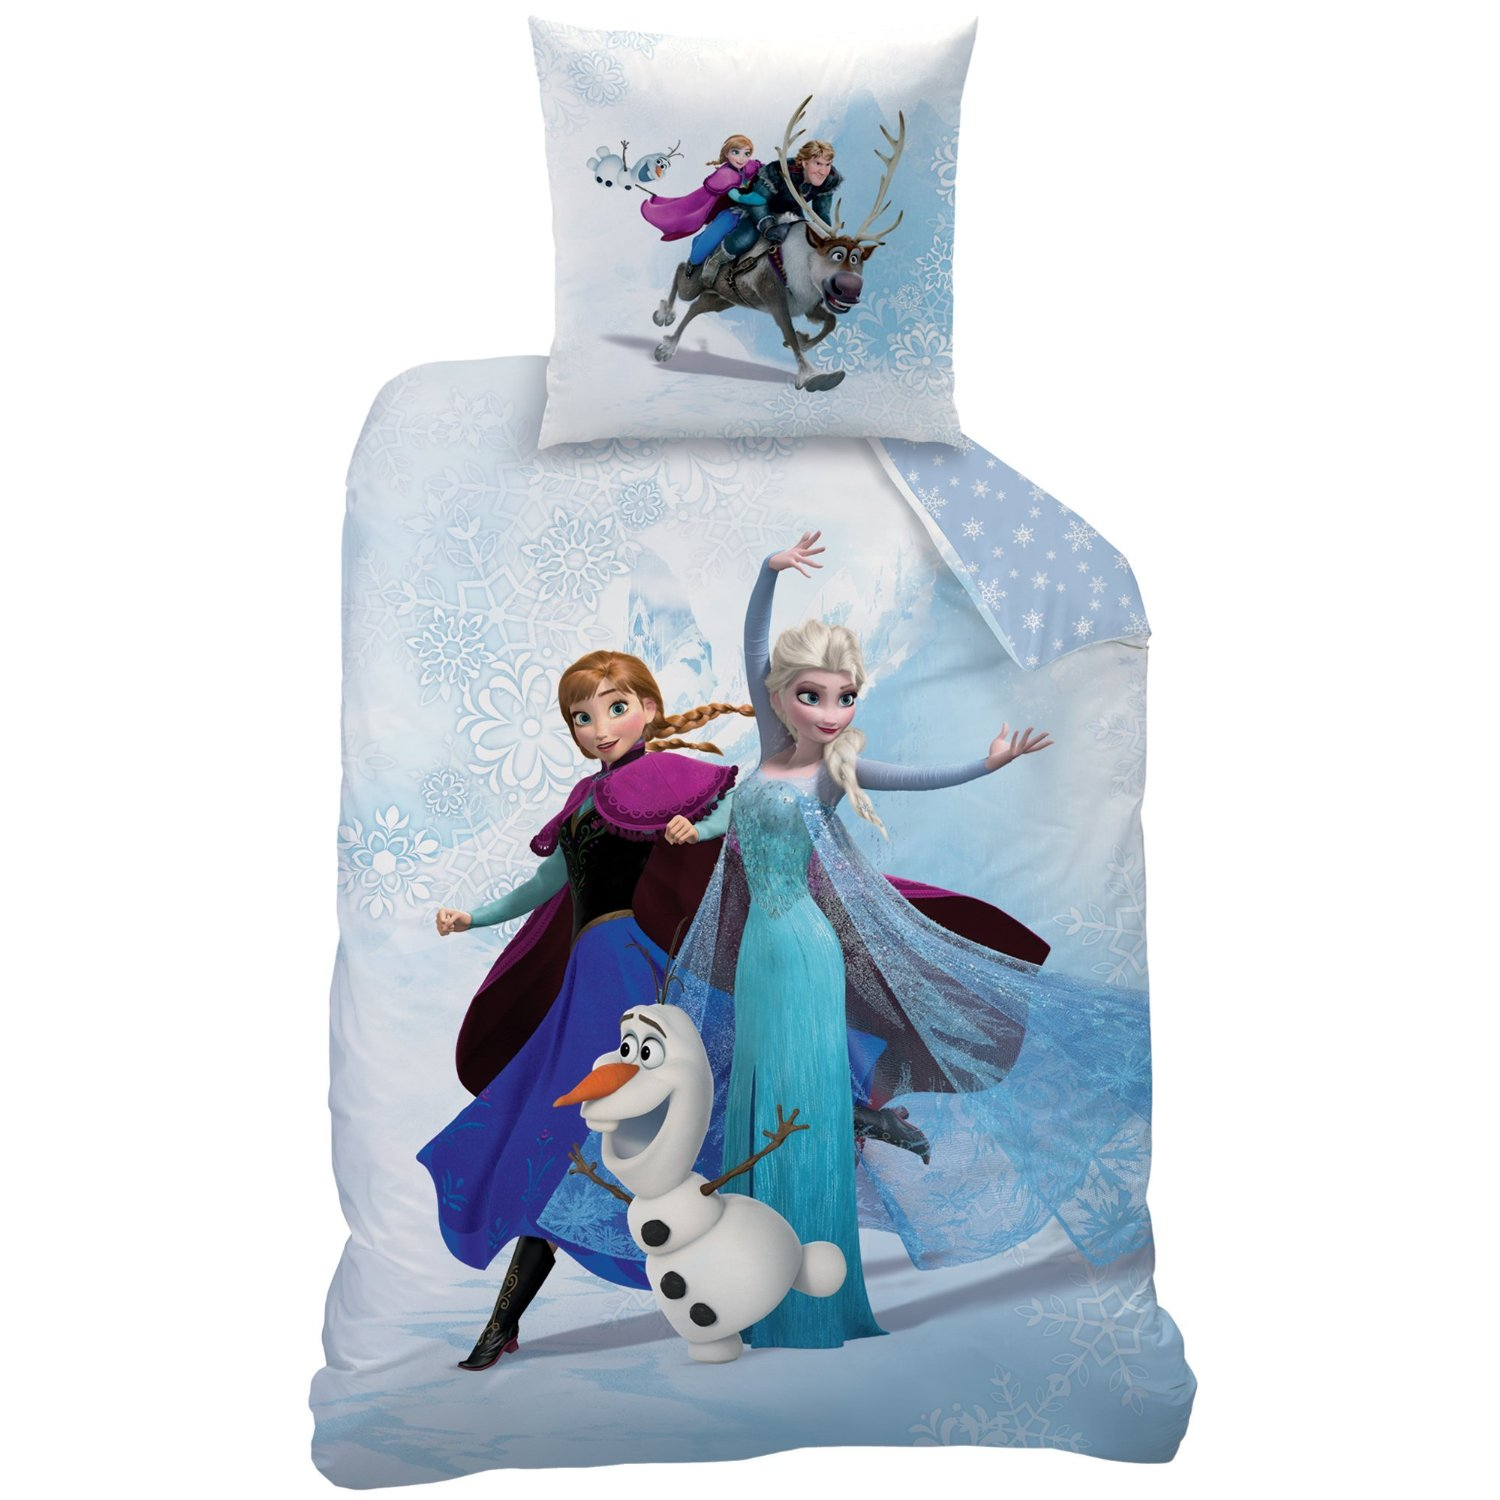 Reine des neiges enjoy parure 140 x 200 coton r f for Housse de couette winnie